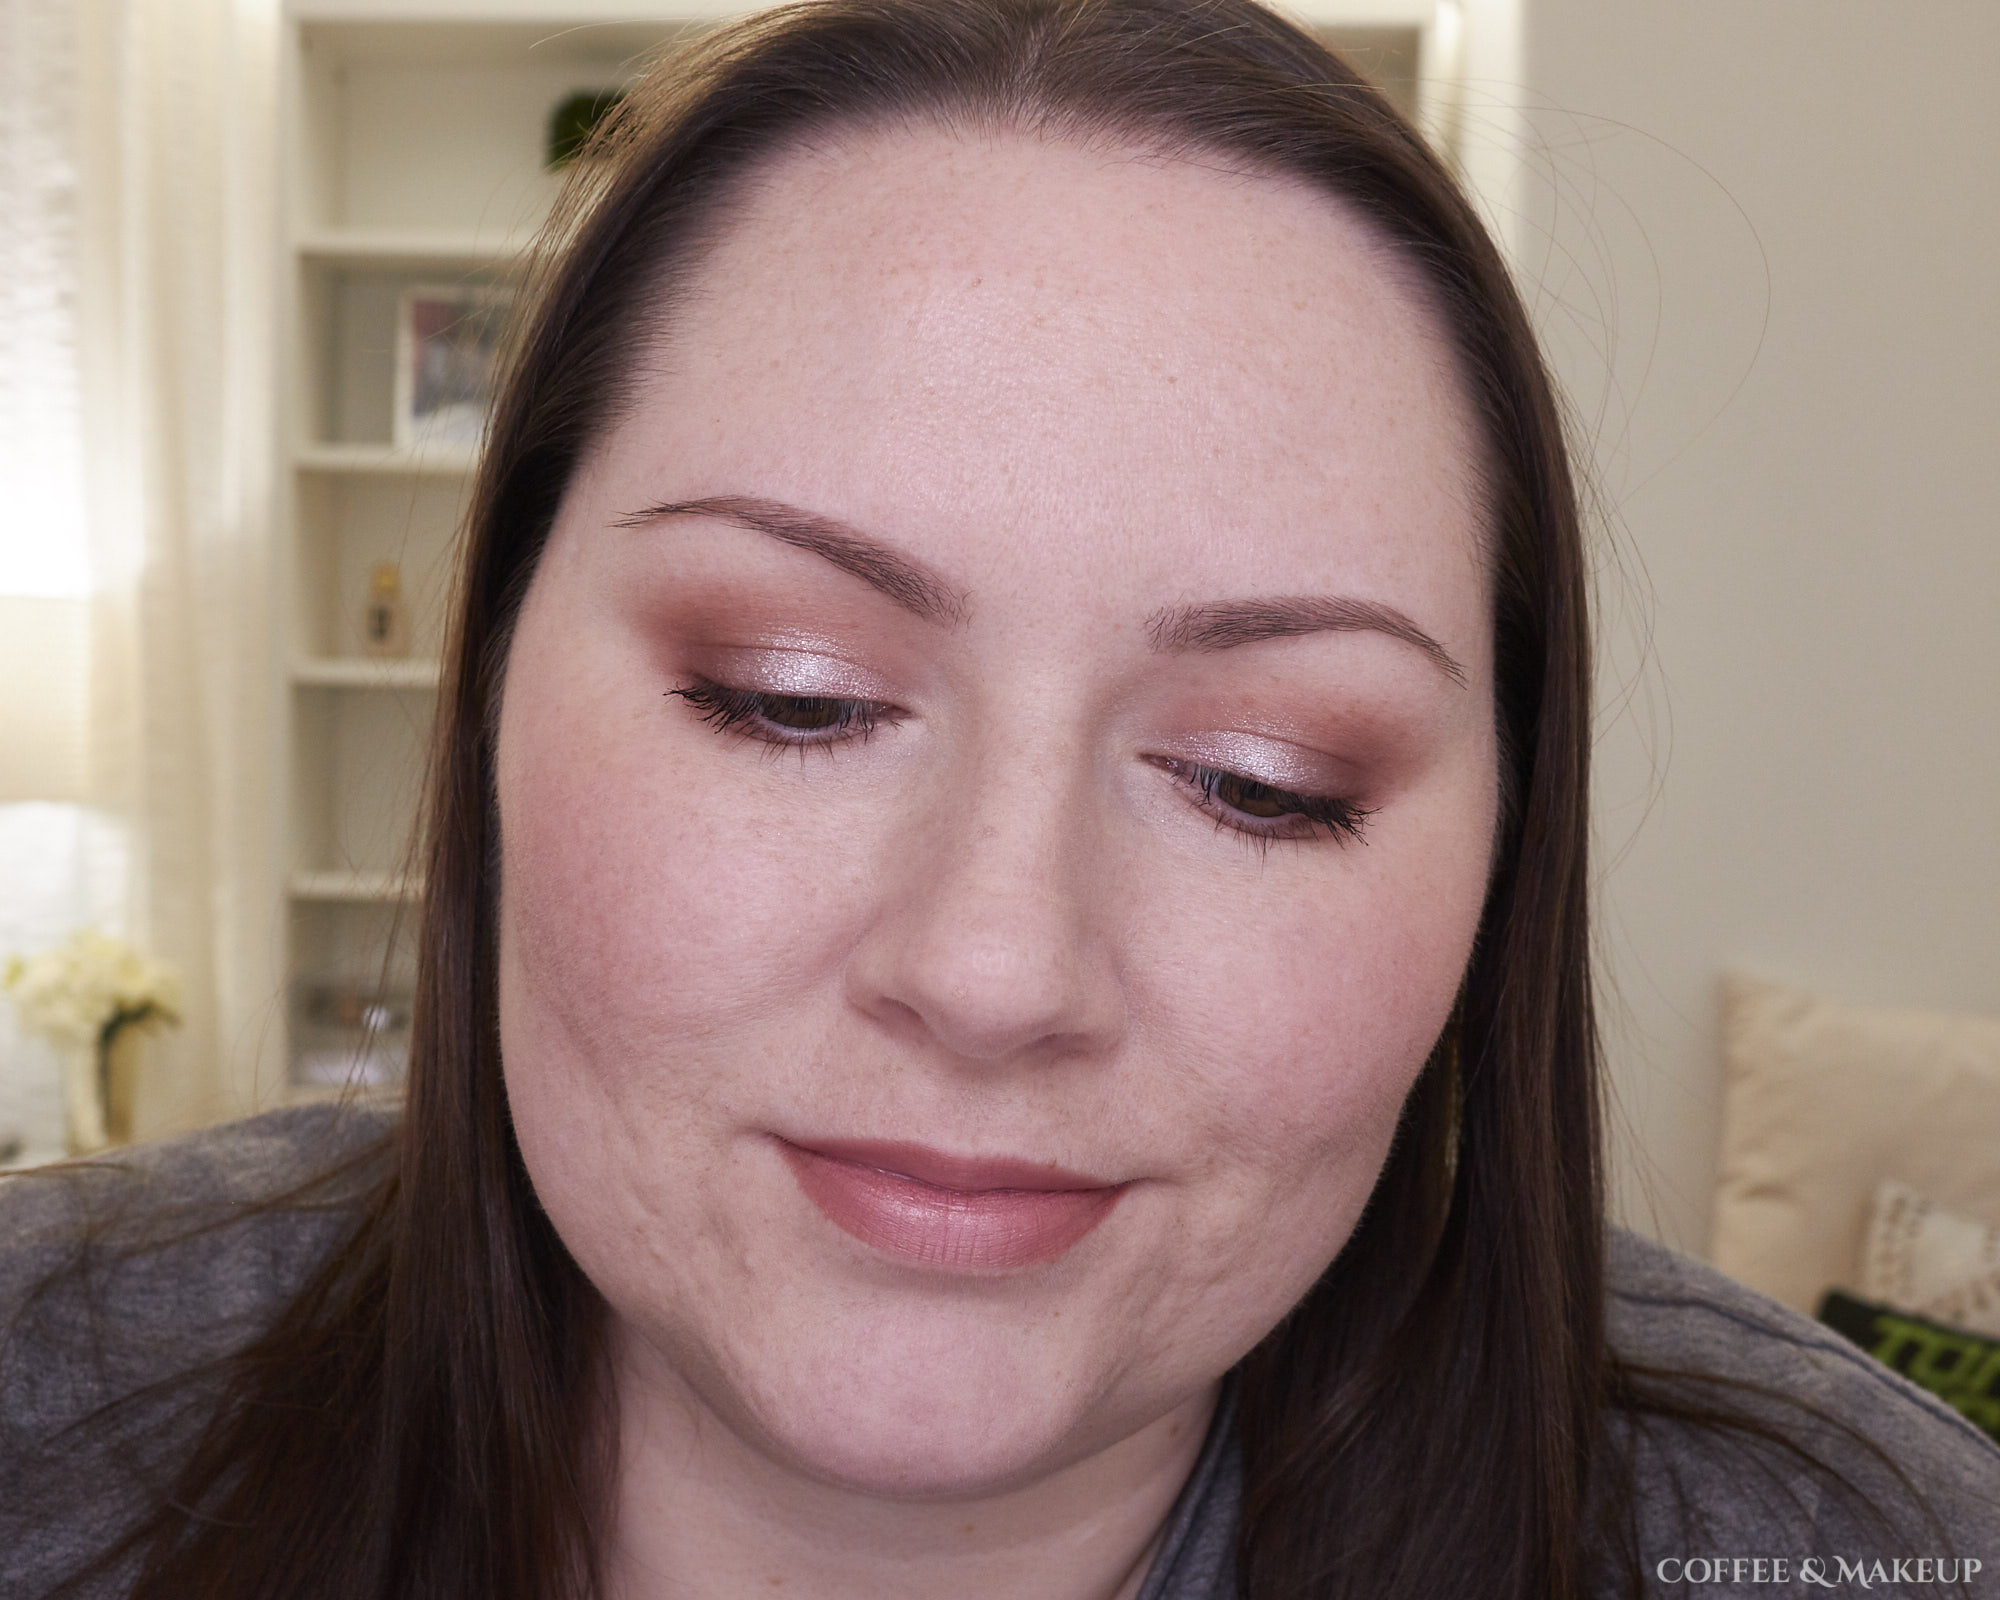 Today's Makeup - February 17, 2018